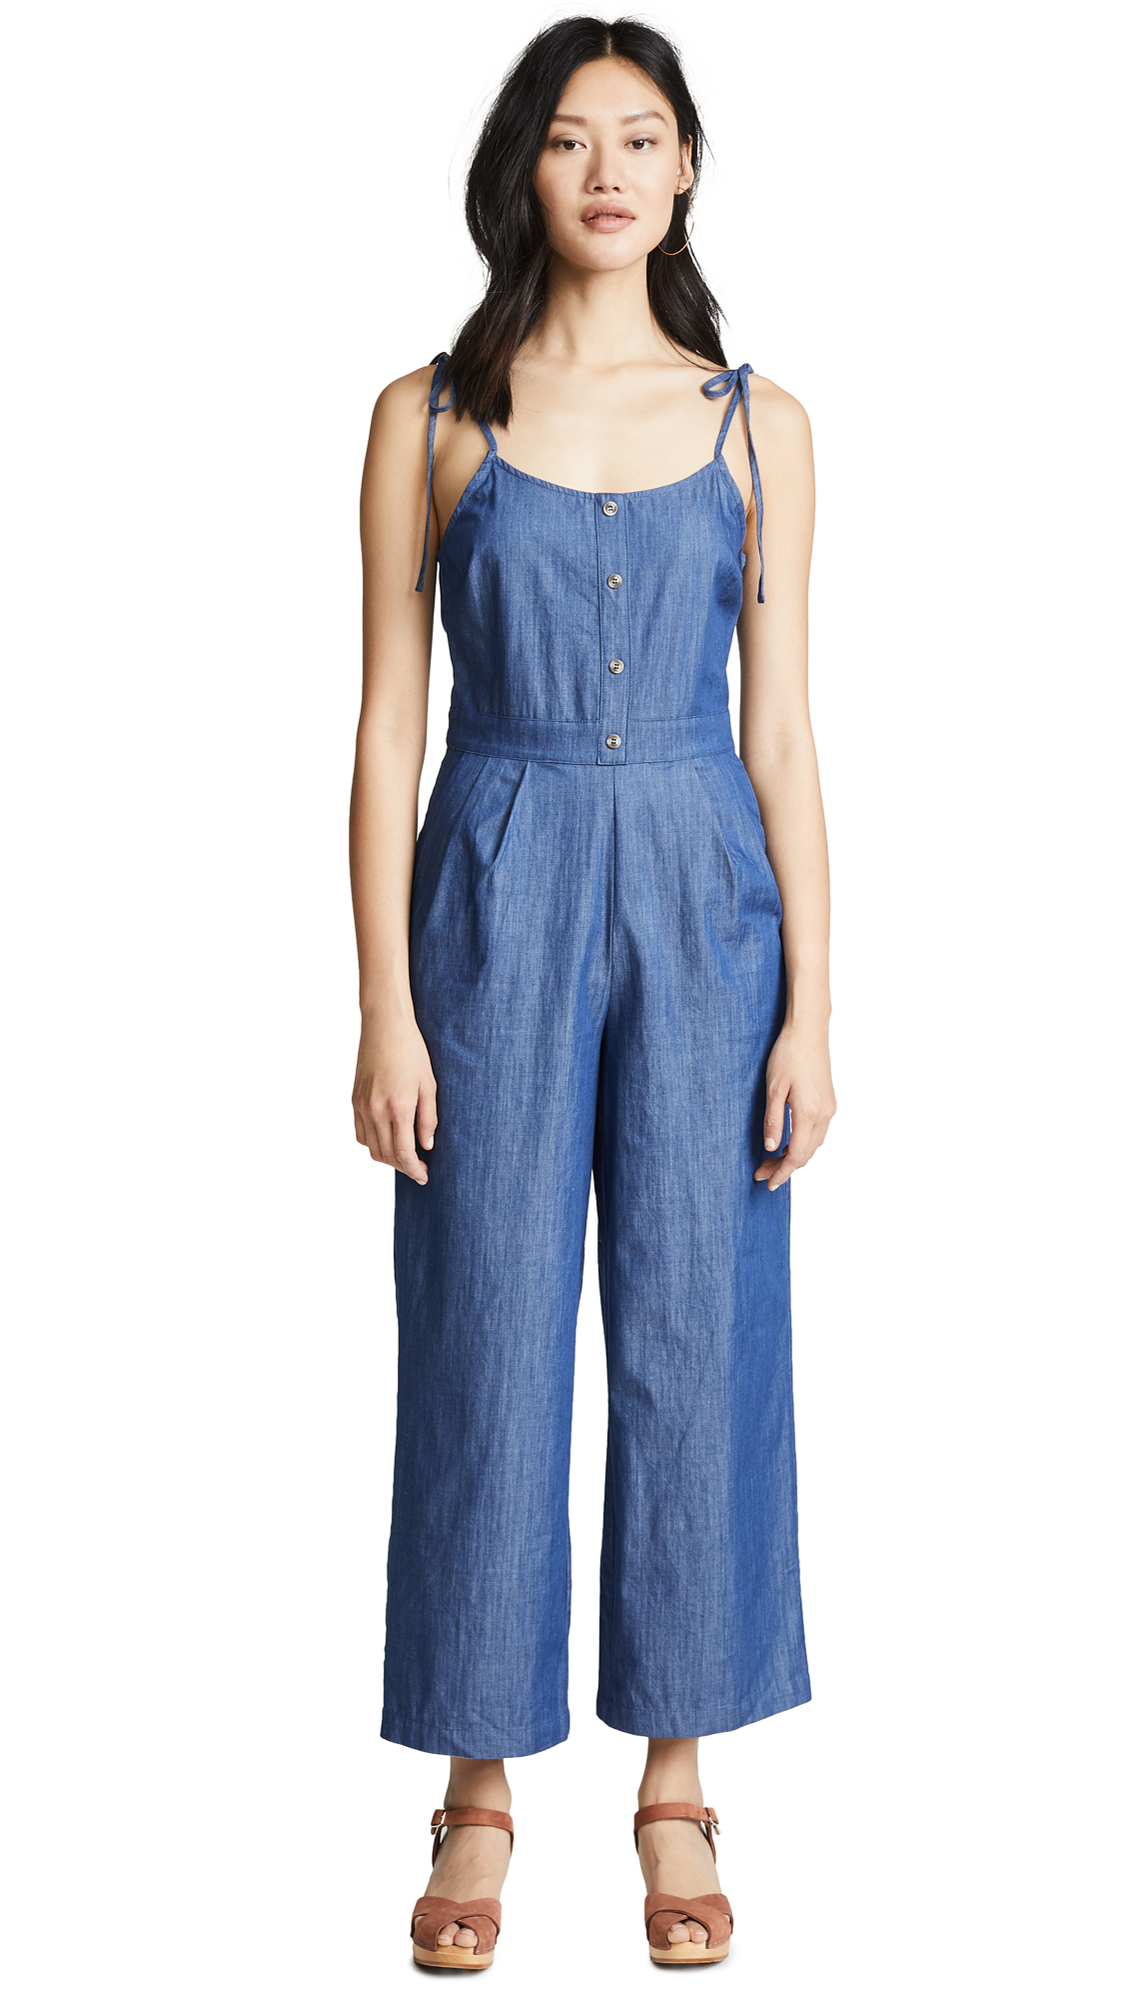 EVIDNT Tie Shoulder Jumpsuit In Chambray